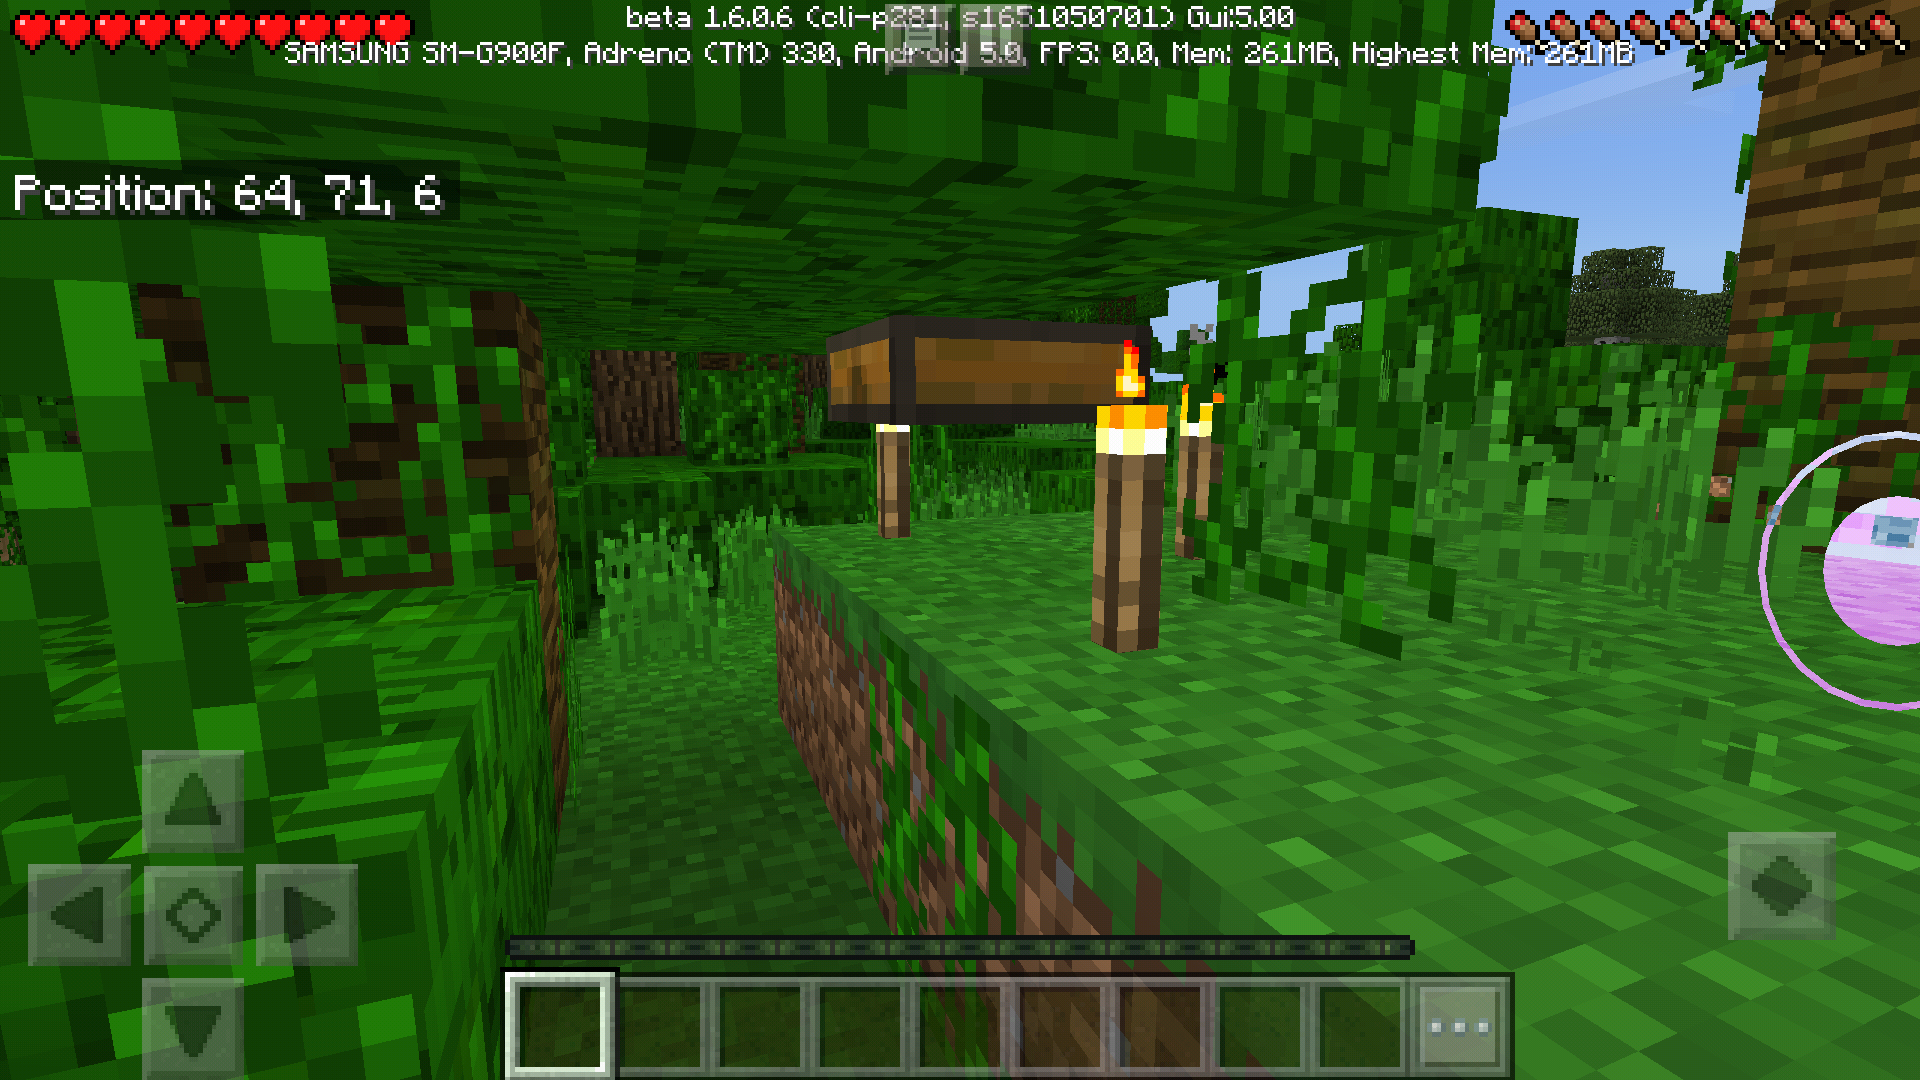 MCPE-34385] Every mob and entity is partially invisible - Jira